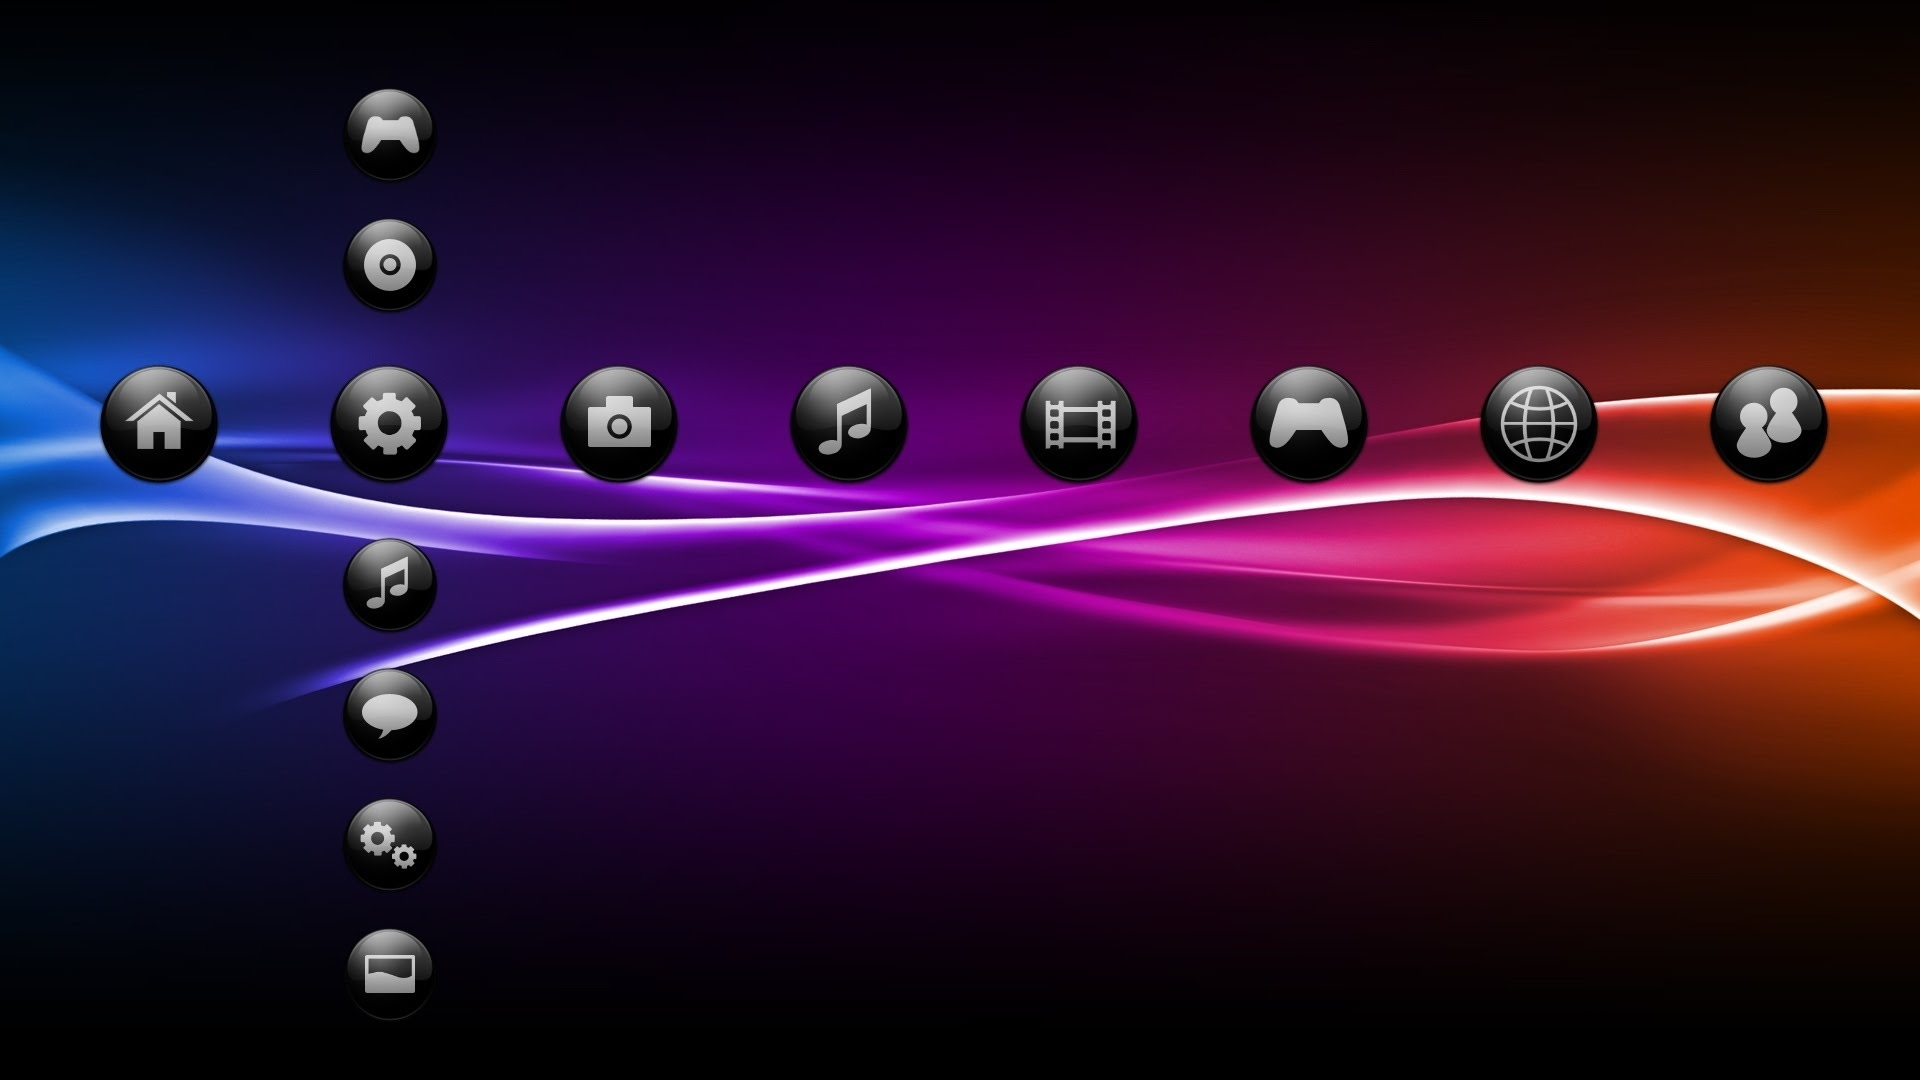 10 Latest Ps3 Wallpapers And Themes FULL HD 1920×1080 For PC Desktop